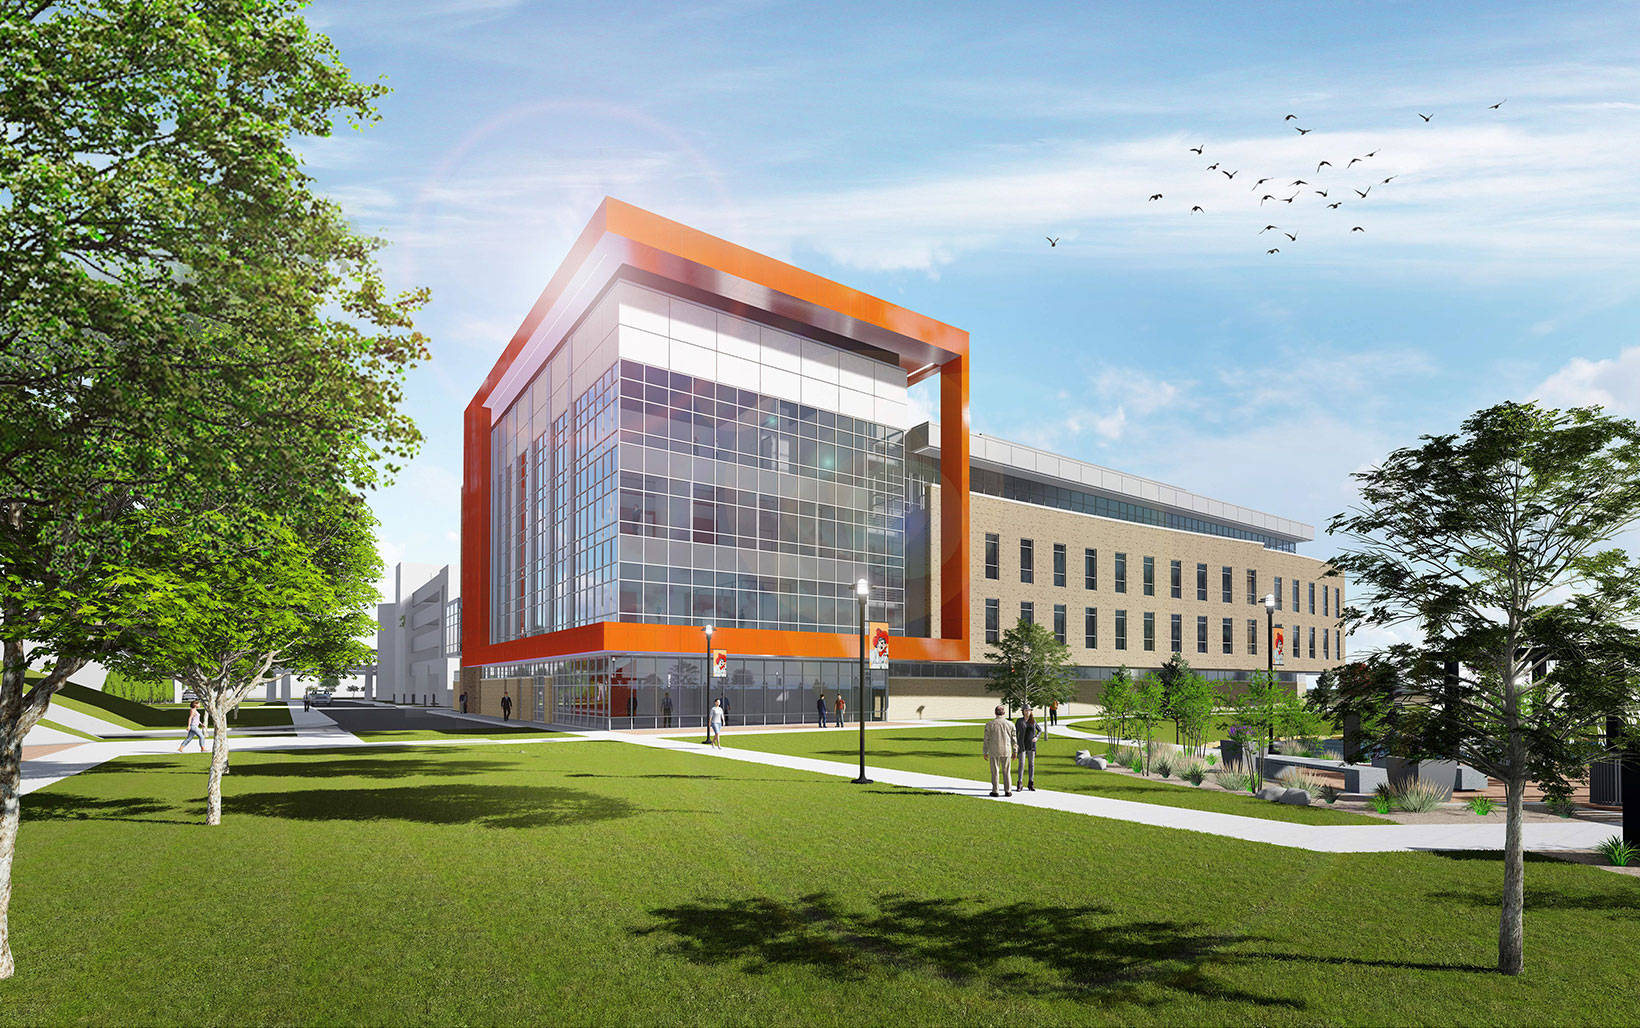 North Hall will include a bridge to the existing building, and a future link across all buildings for a second floor internal walking path.